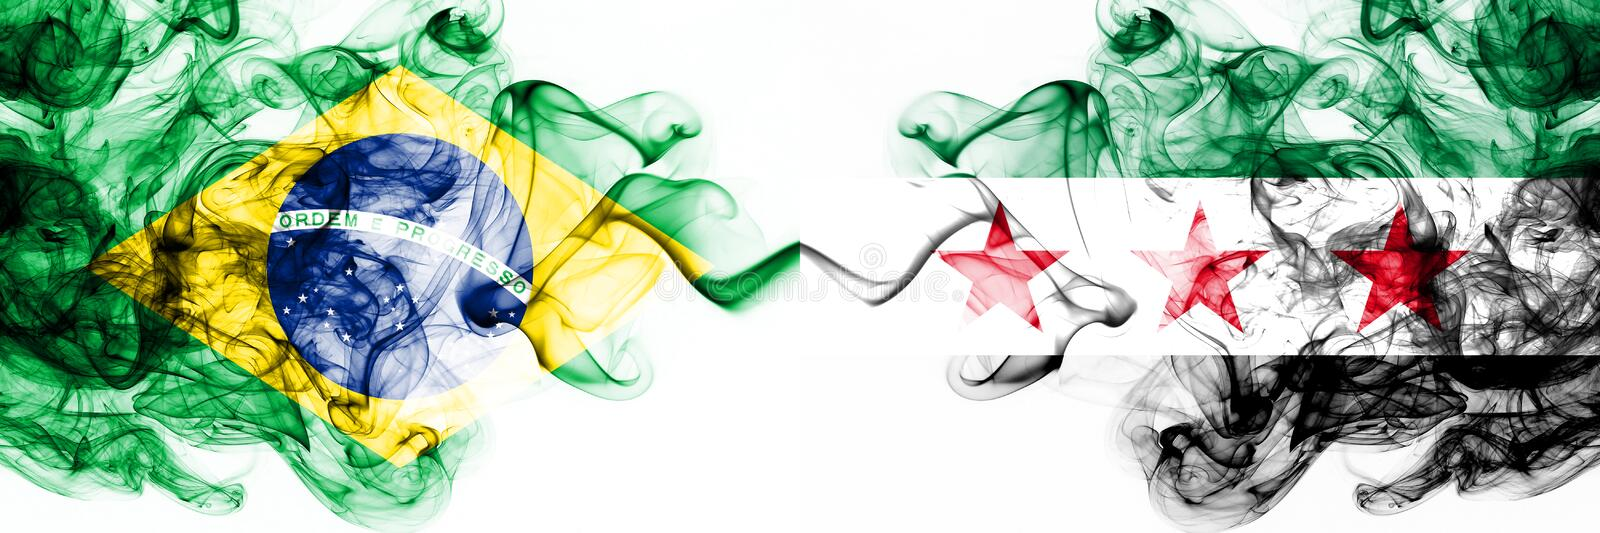 Brazil, Brazilian vs Syria, Syrian Arab Republic, opposition smoky mystic flags placed side by side. Thick colored silky abstract. Smoke flags combination stock illustration